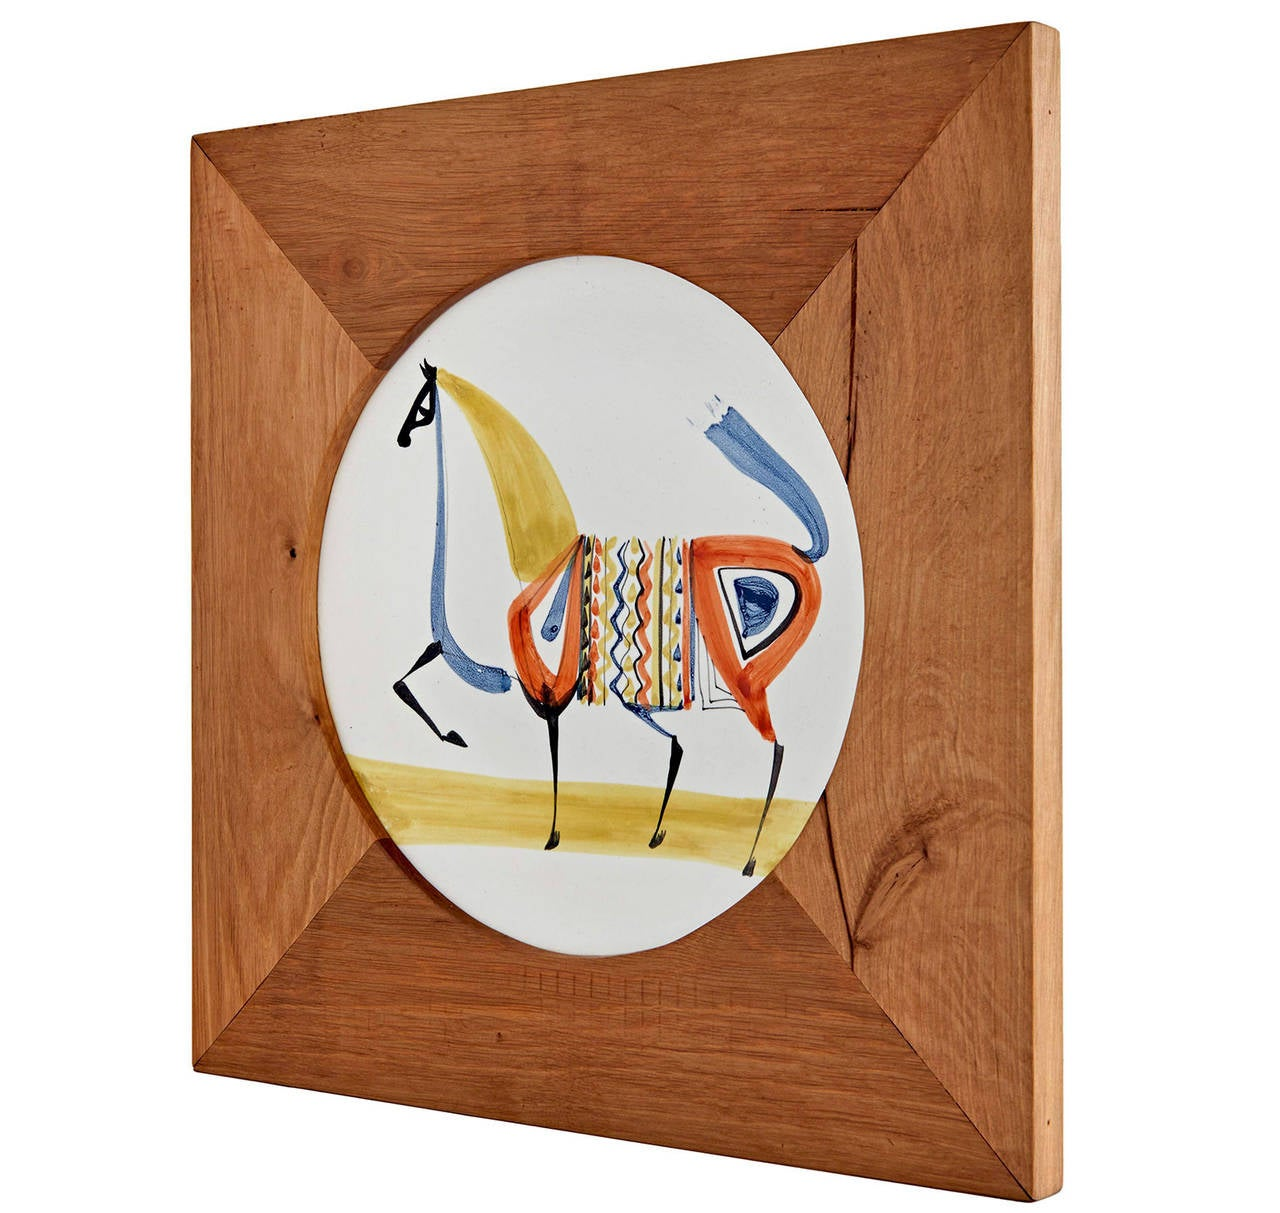 "Roger Capron's colorful, stylized horse resides in a solid hardwood frame custom-made for this piece. The plate itself measures 9.5 inches in diameter. As framed, the piece is 14 inches square. Signed ""CAPRON VALLAURIS M35."""